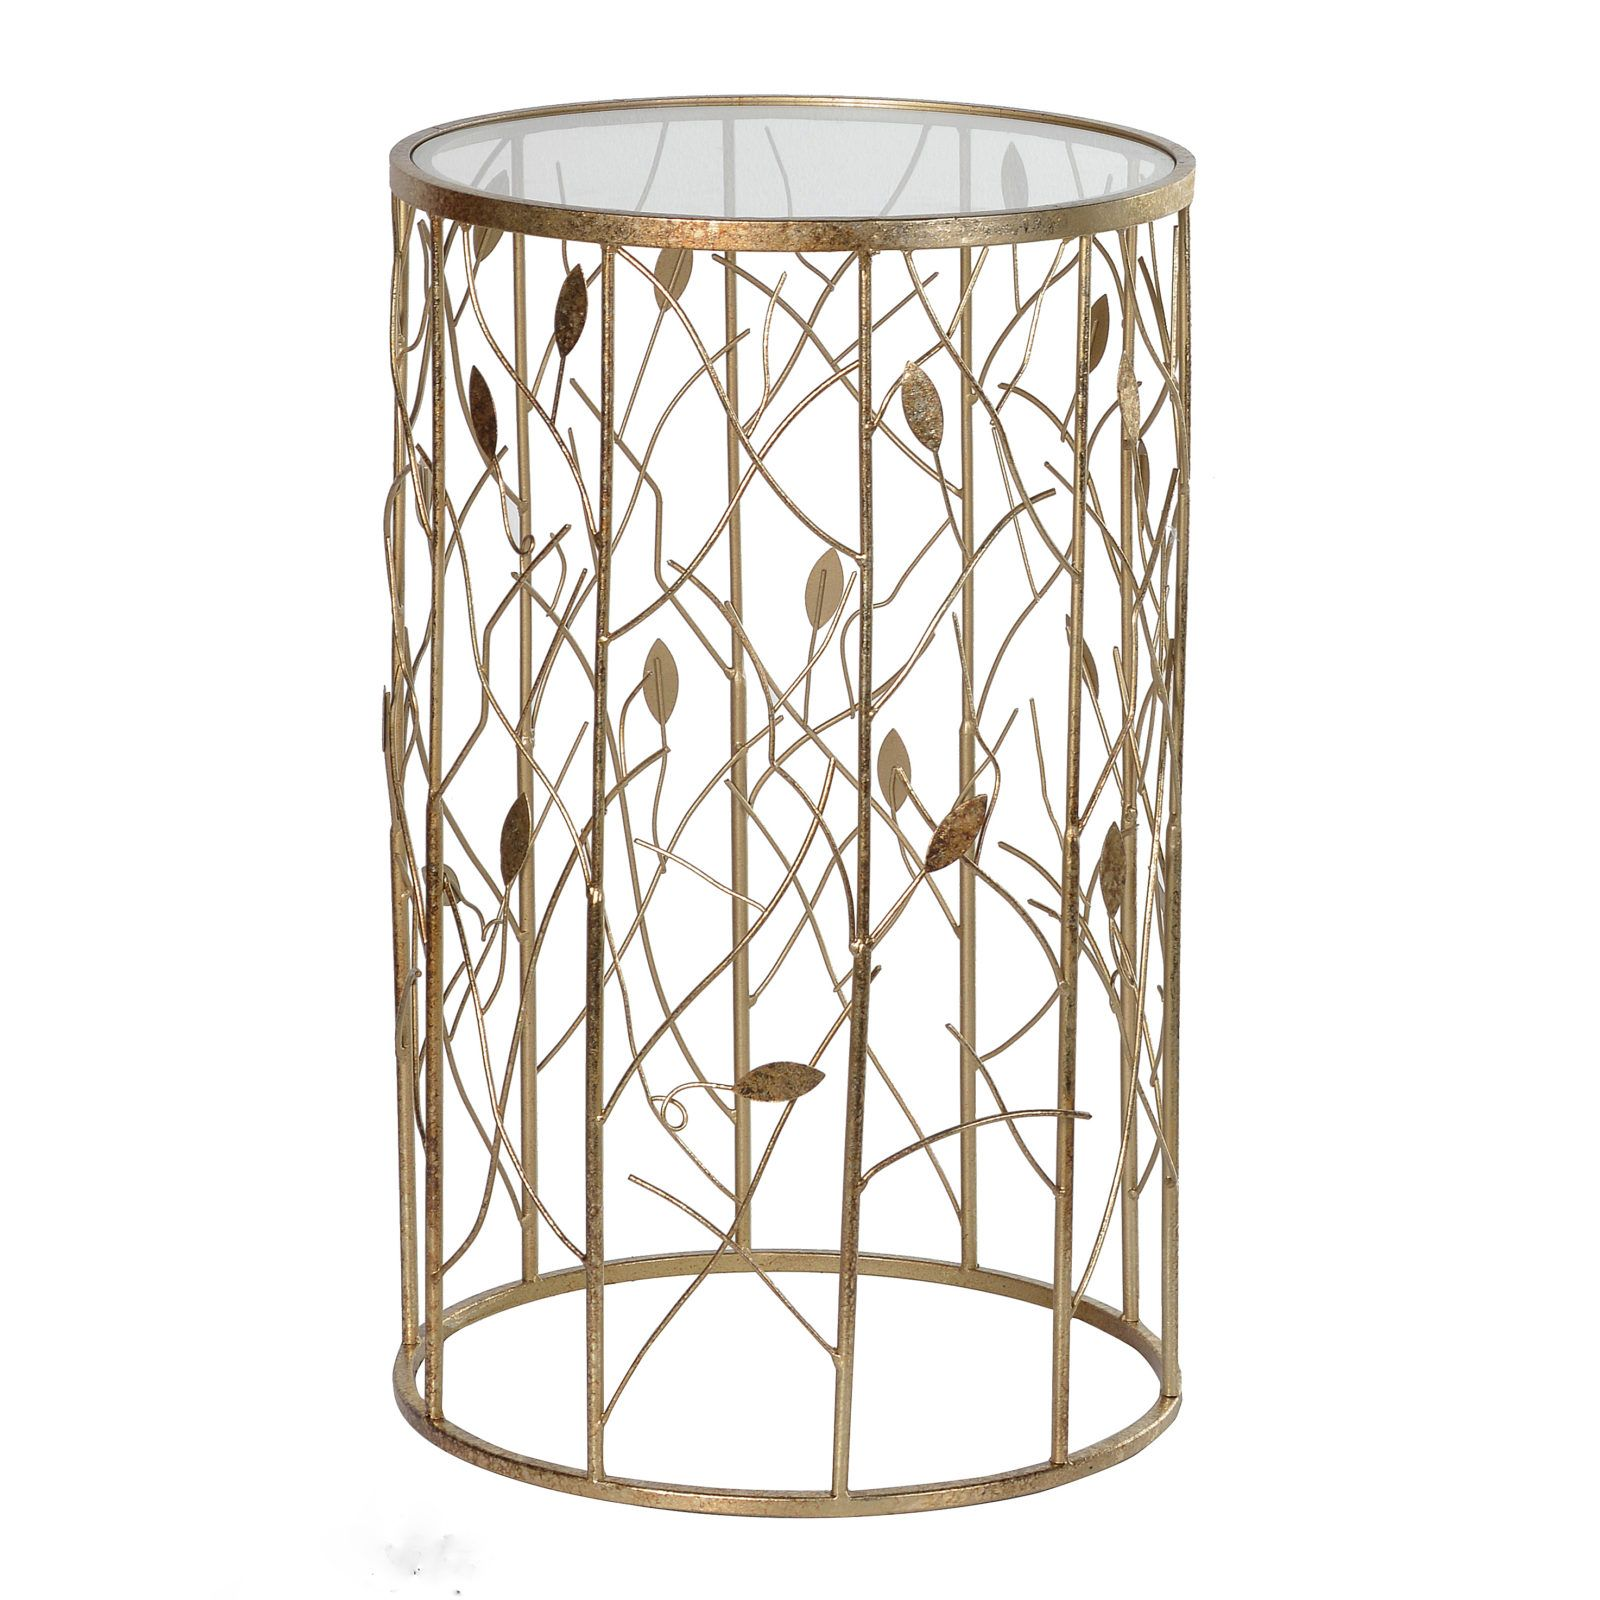 Round Gold Metal Side Table With Cut Out Branch And Leaf Design To Base